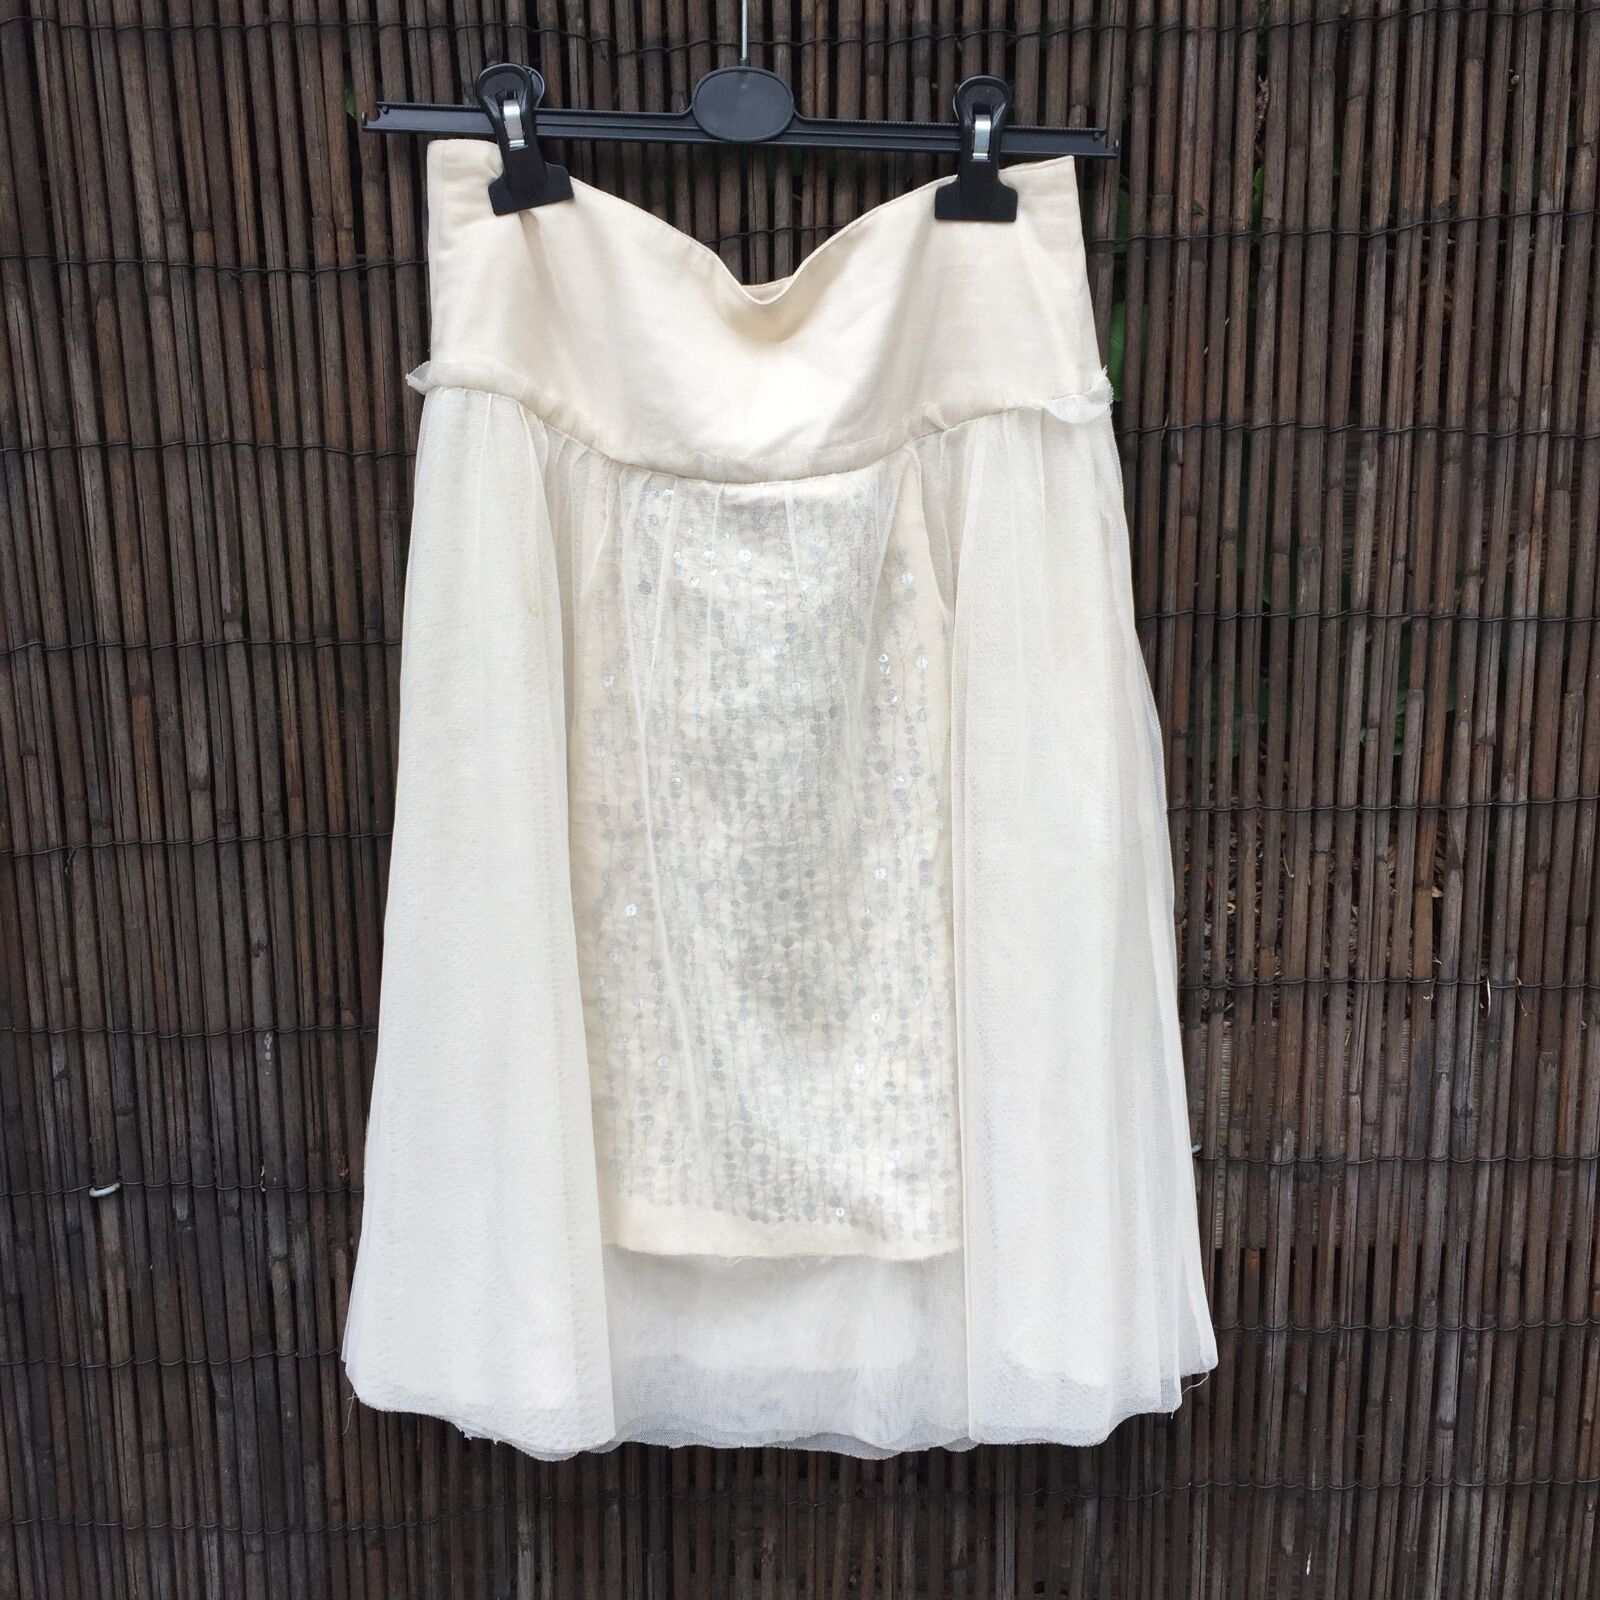 Ladies cream skirt. Pretty layered evening party skirt with sequins by Noa Noa